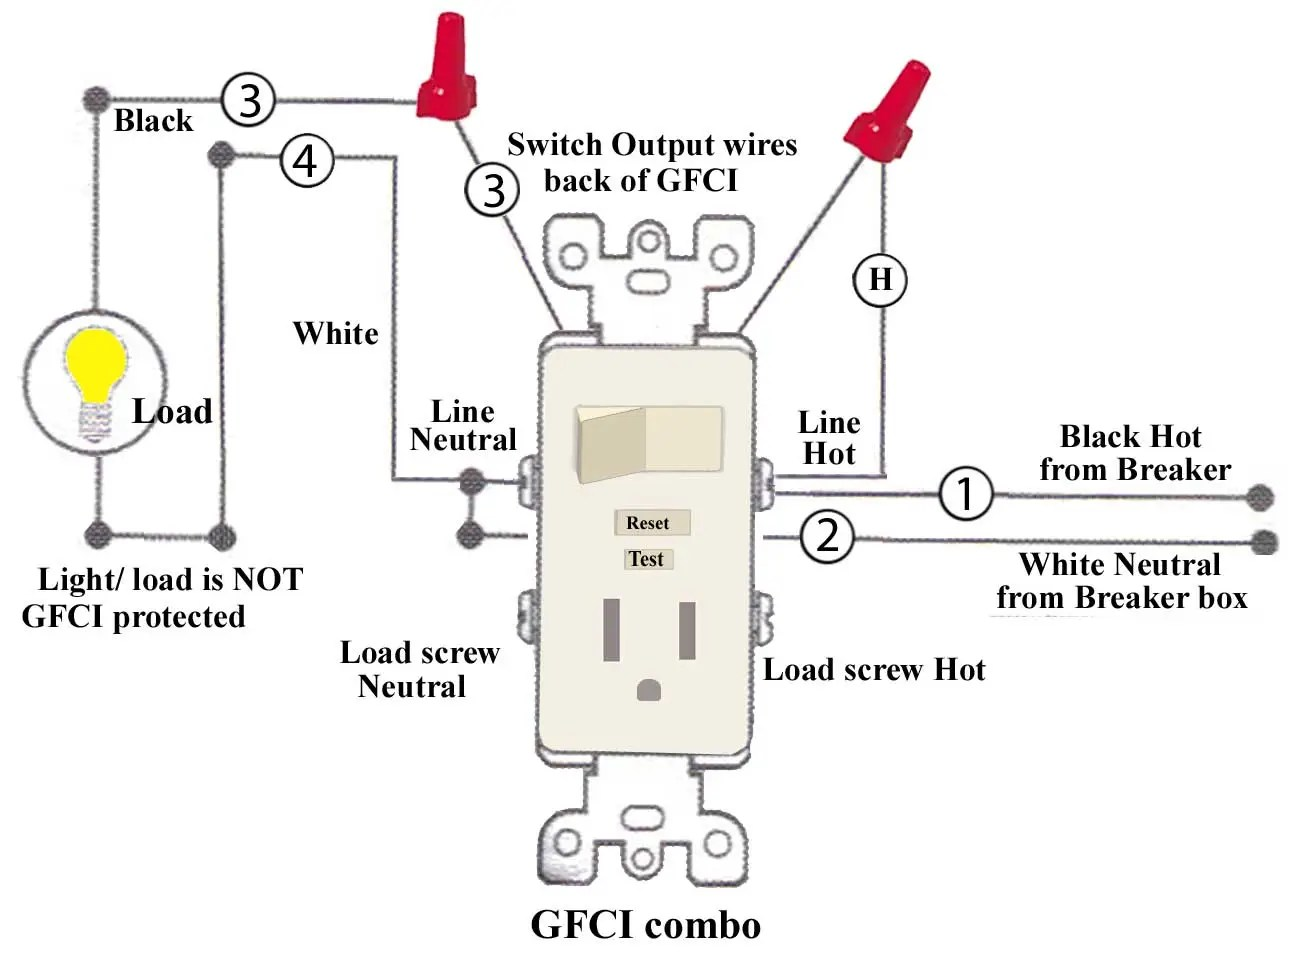 hight resolution of  wiring diagram inside 110 volt gfci how to install and troubleshoot gfcigfci outlet larger image